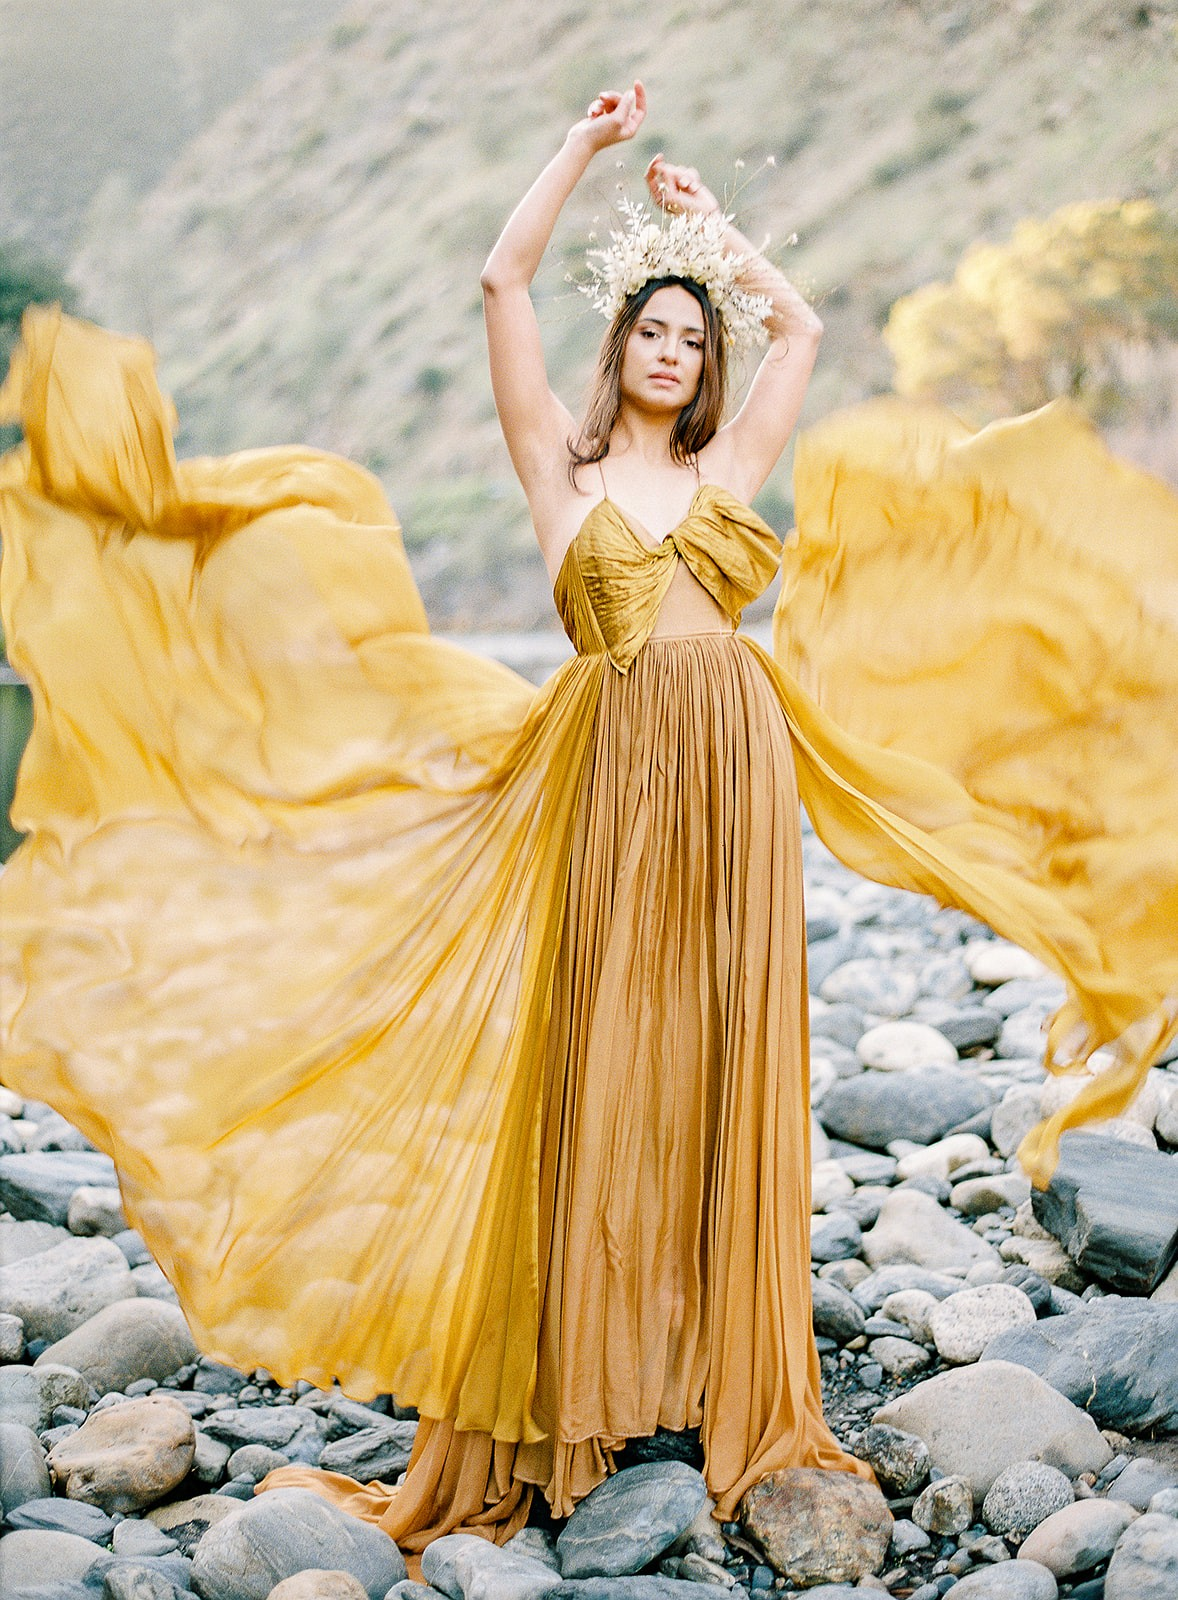 Fall Inspired Editorial in Yosemite National Park